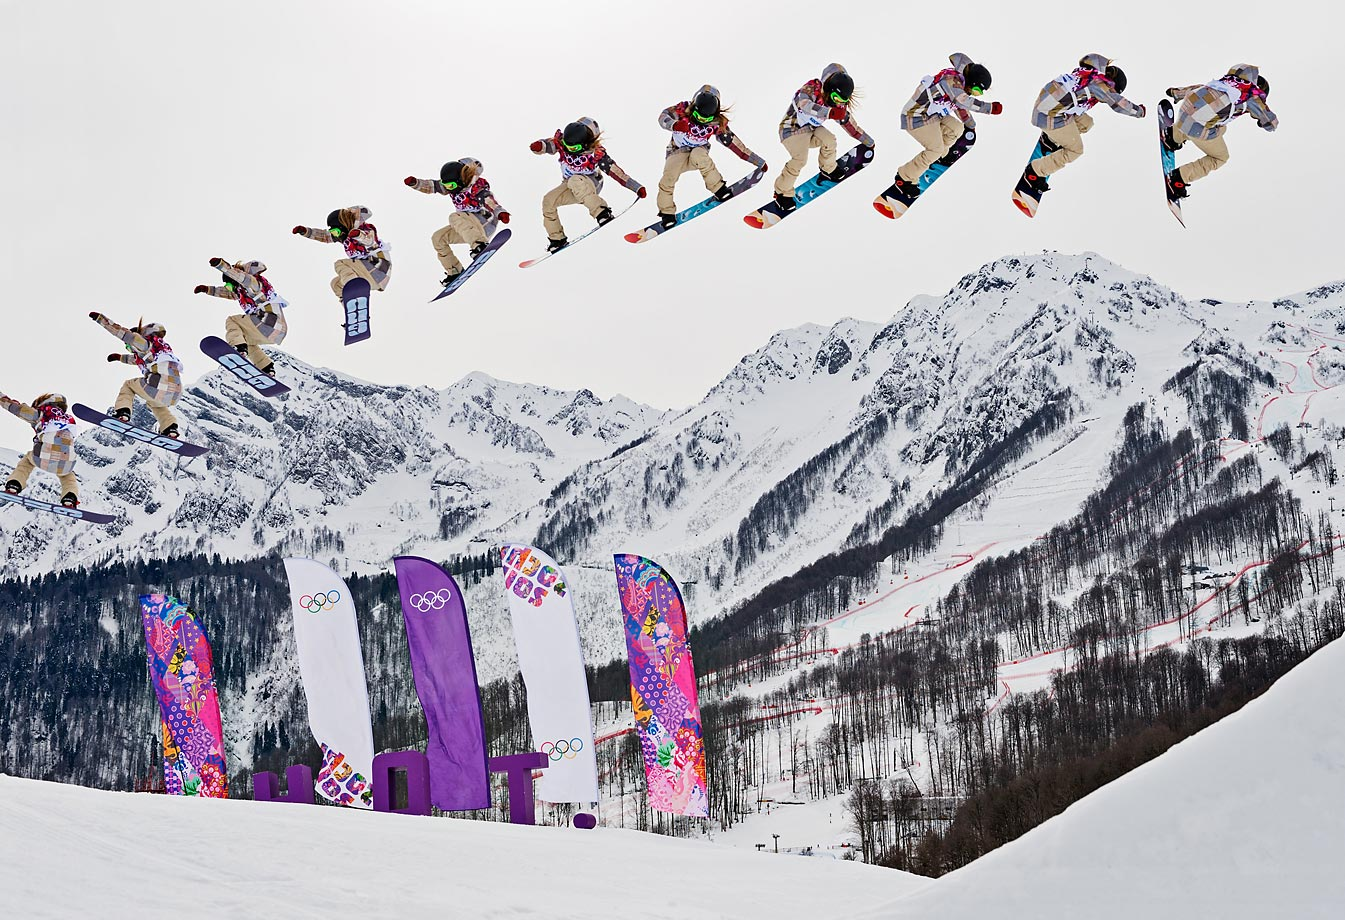 American snowboarder Jamie Anderson's jump during the ladies' slopestyle finals at the Olympics is shown in multiple exposures. Anderson won a gold medal in the competition.